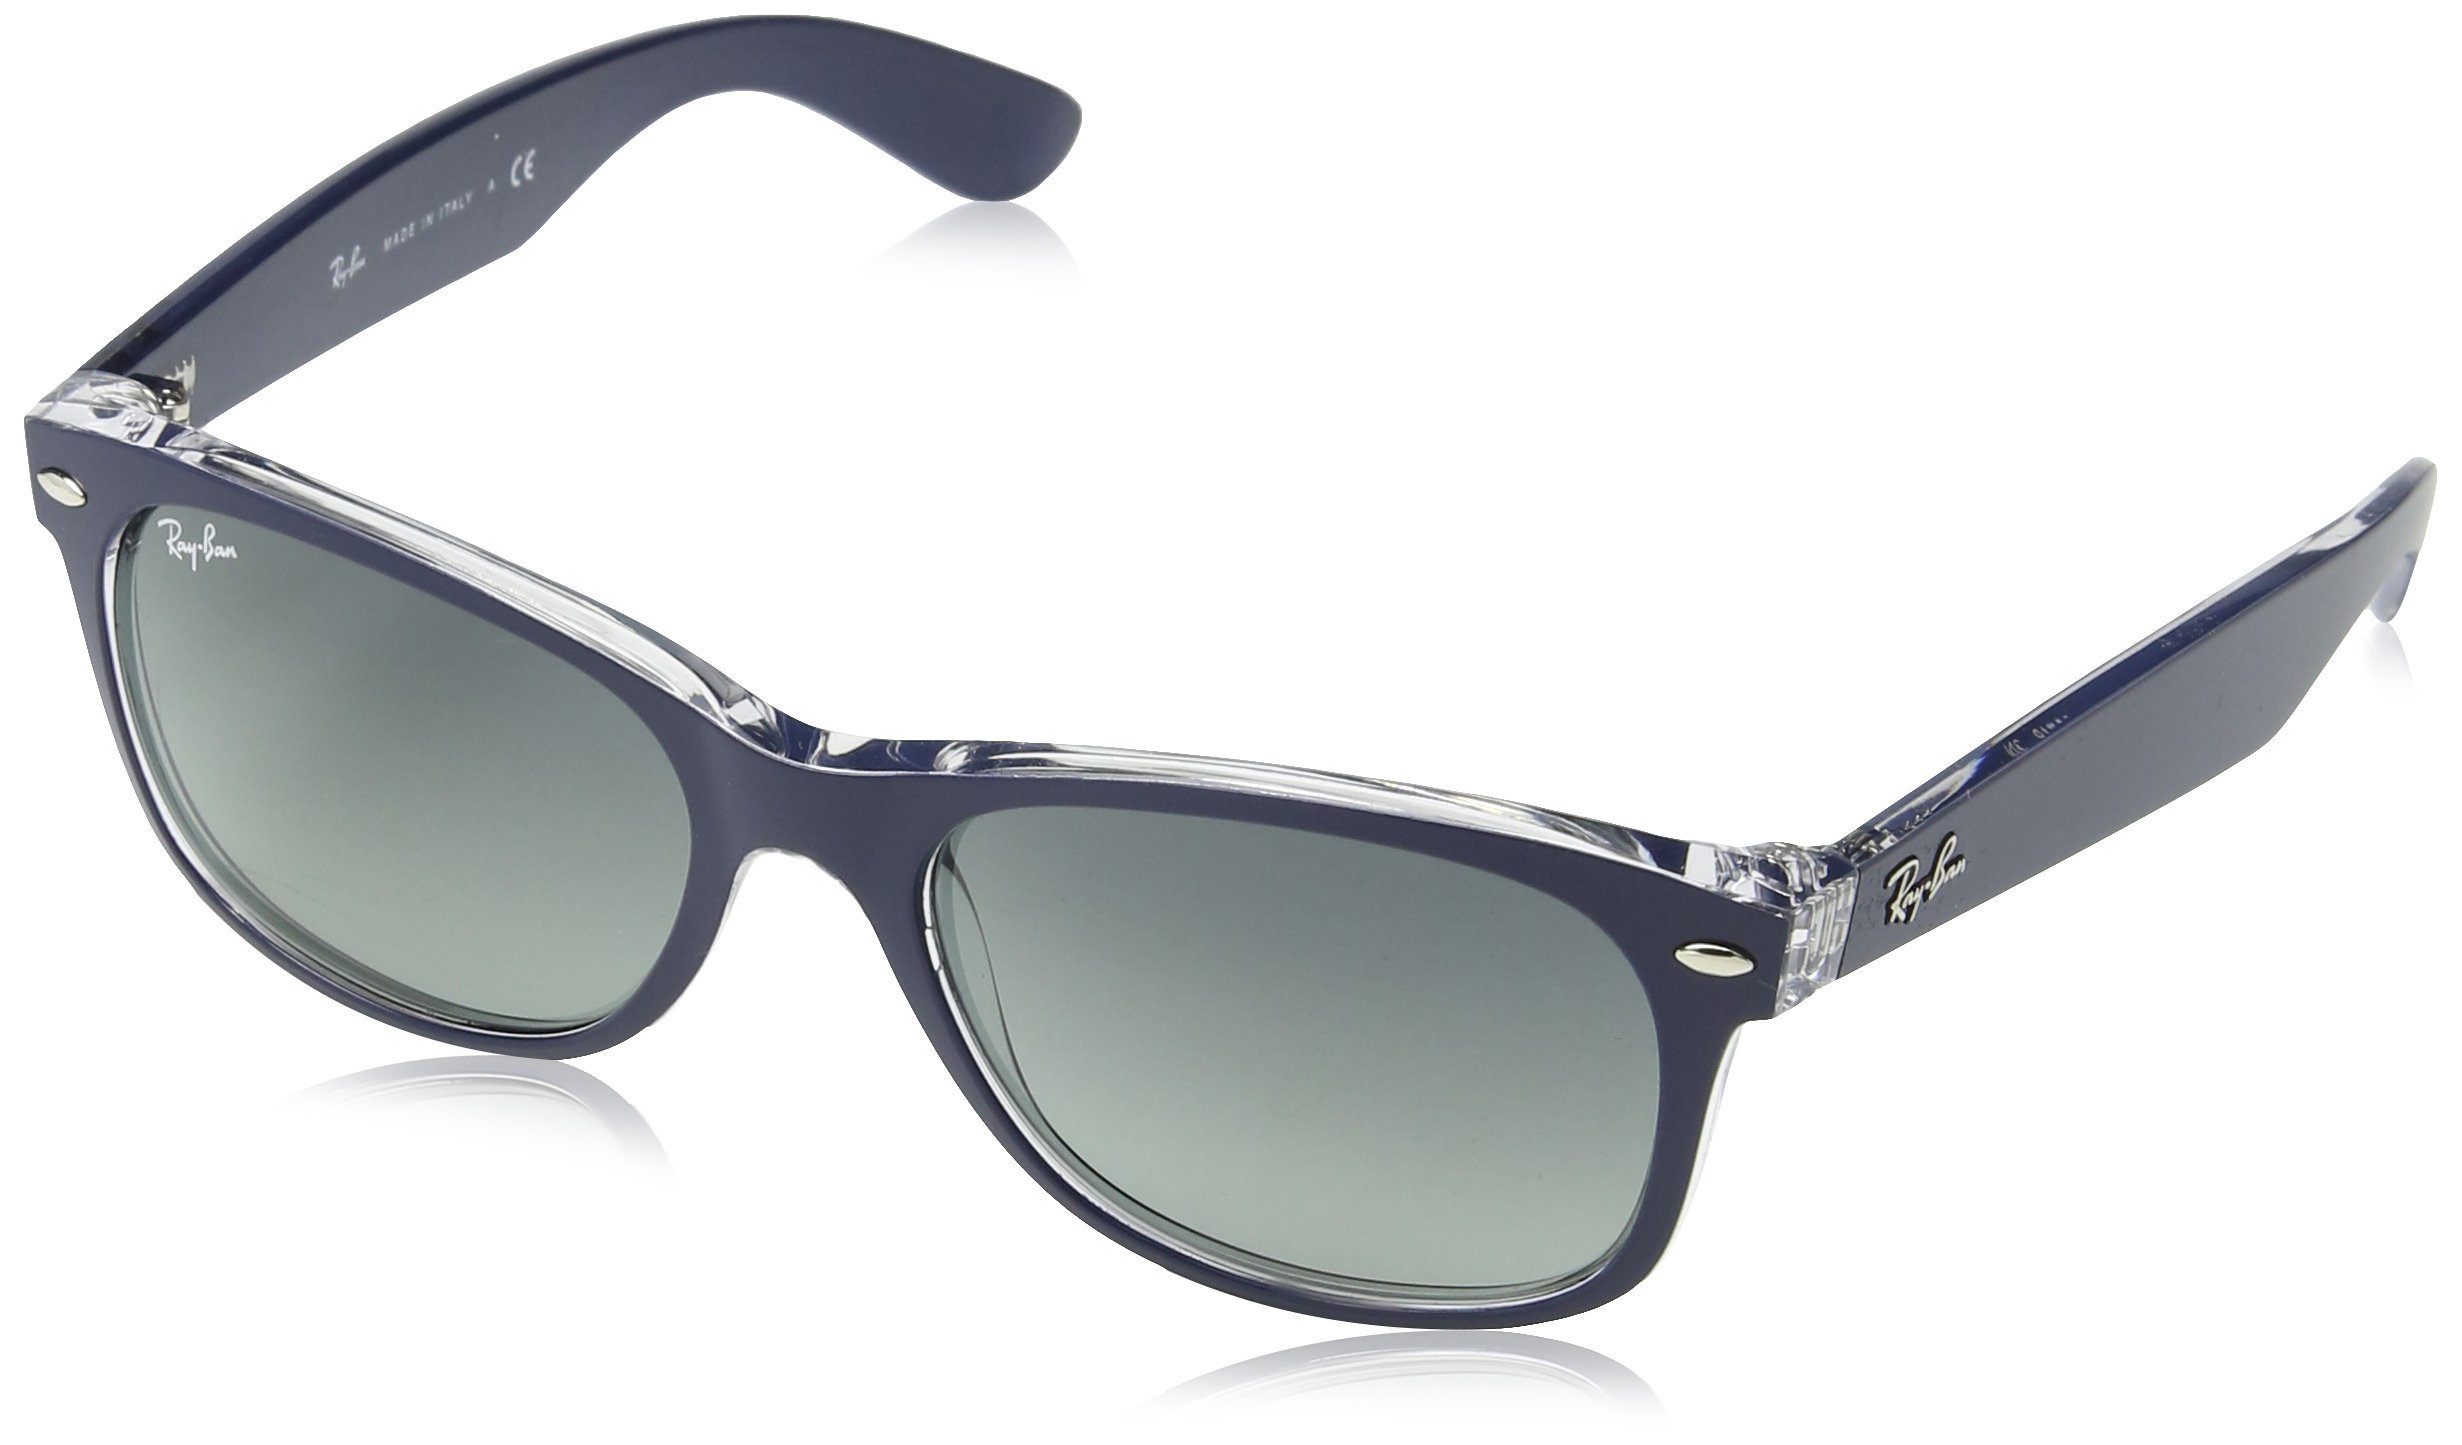 RAY-BAN RB2132 New Wayfarer Sunglasses, Matte Blue On Transparent/Grey Gradient, 55 mm by RAY-BAN